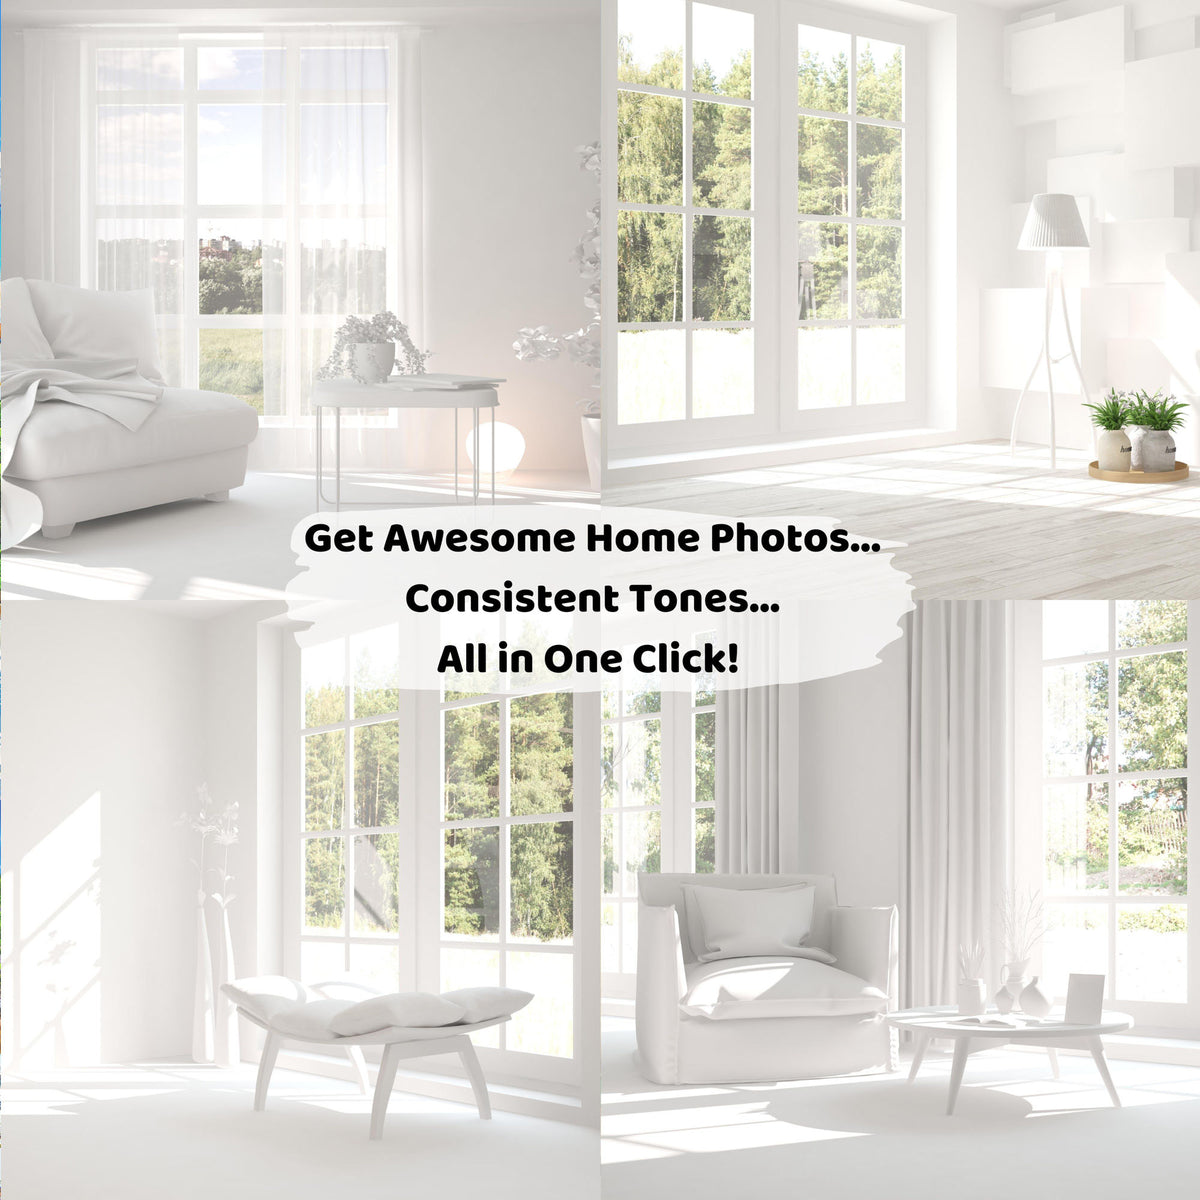 Home Real Estate Lightroom Presets Light and Airy